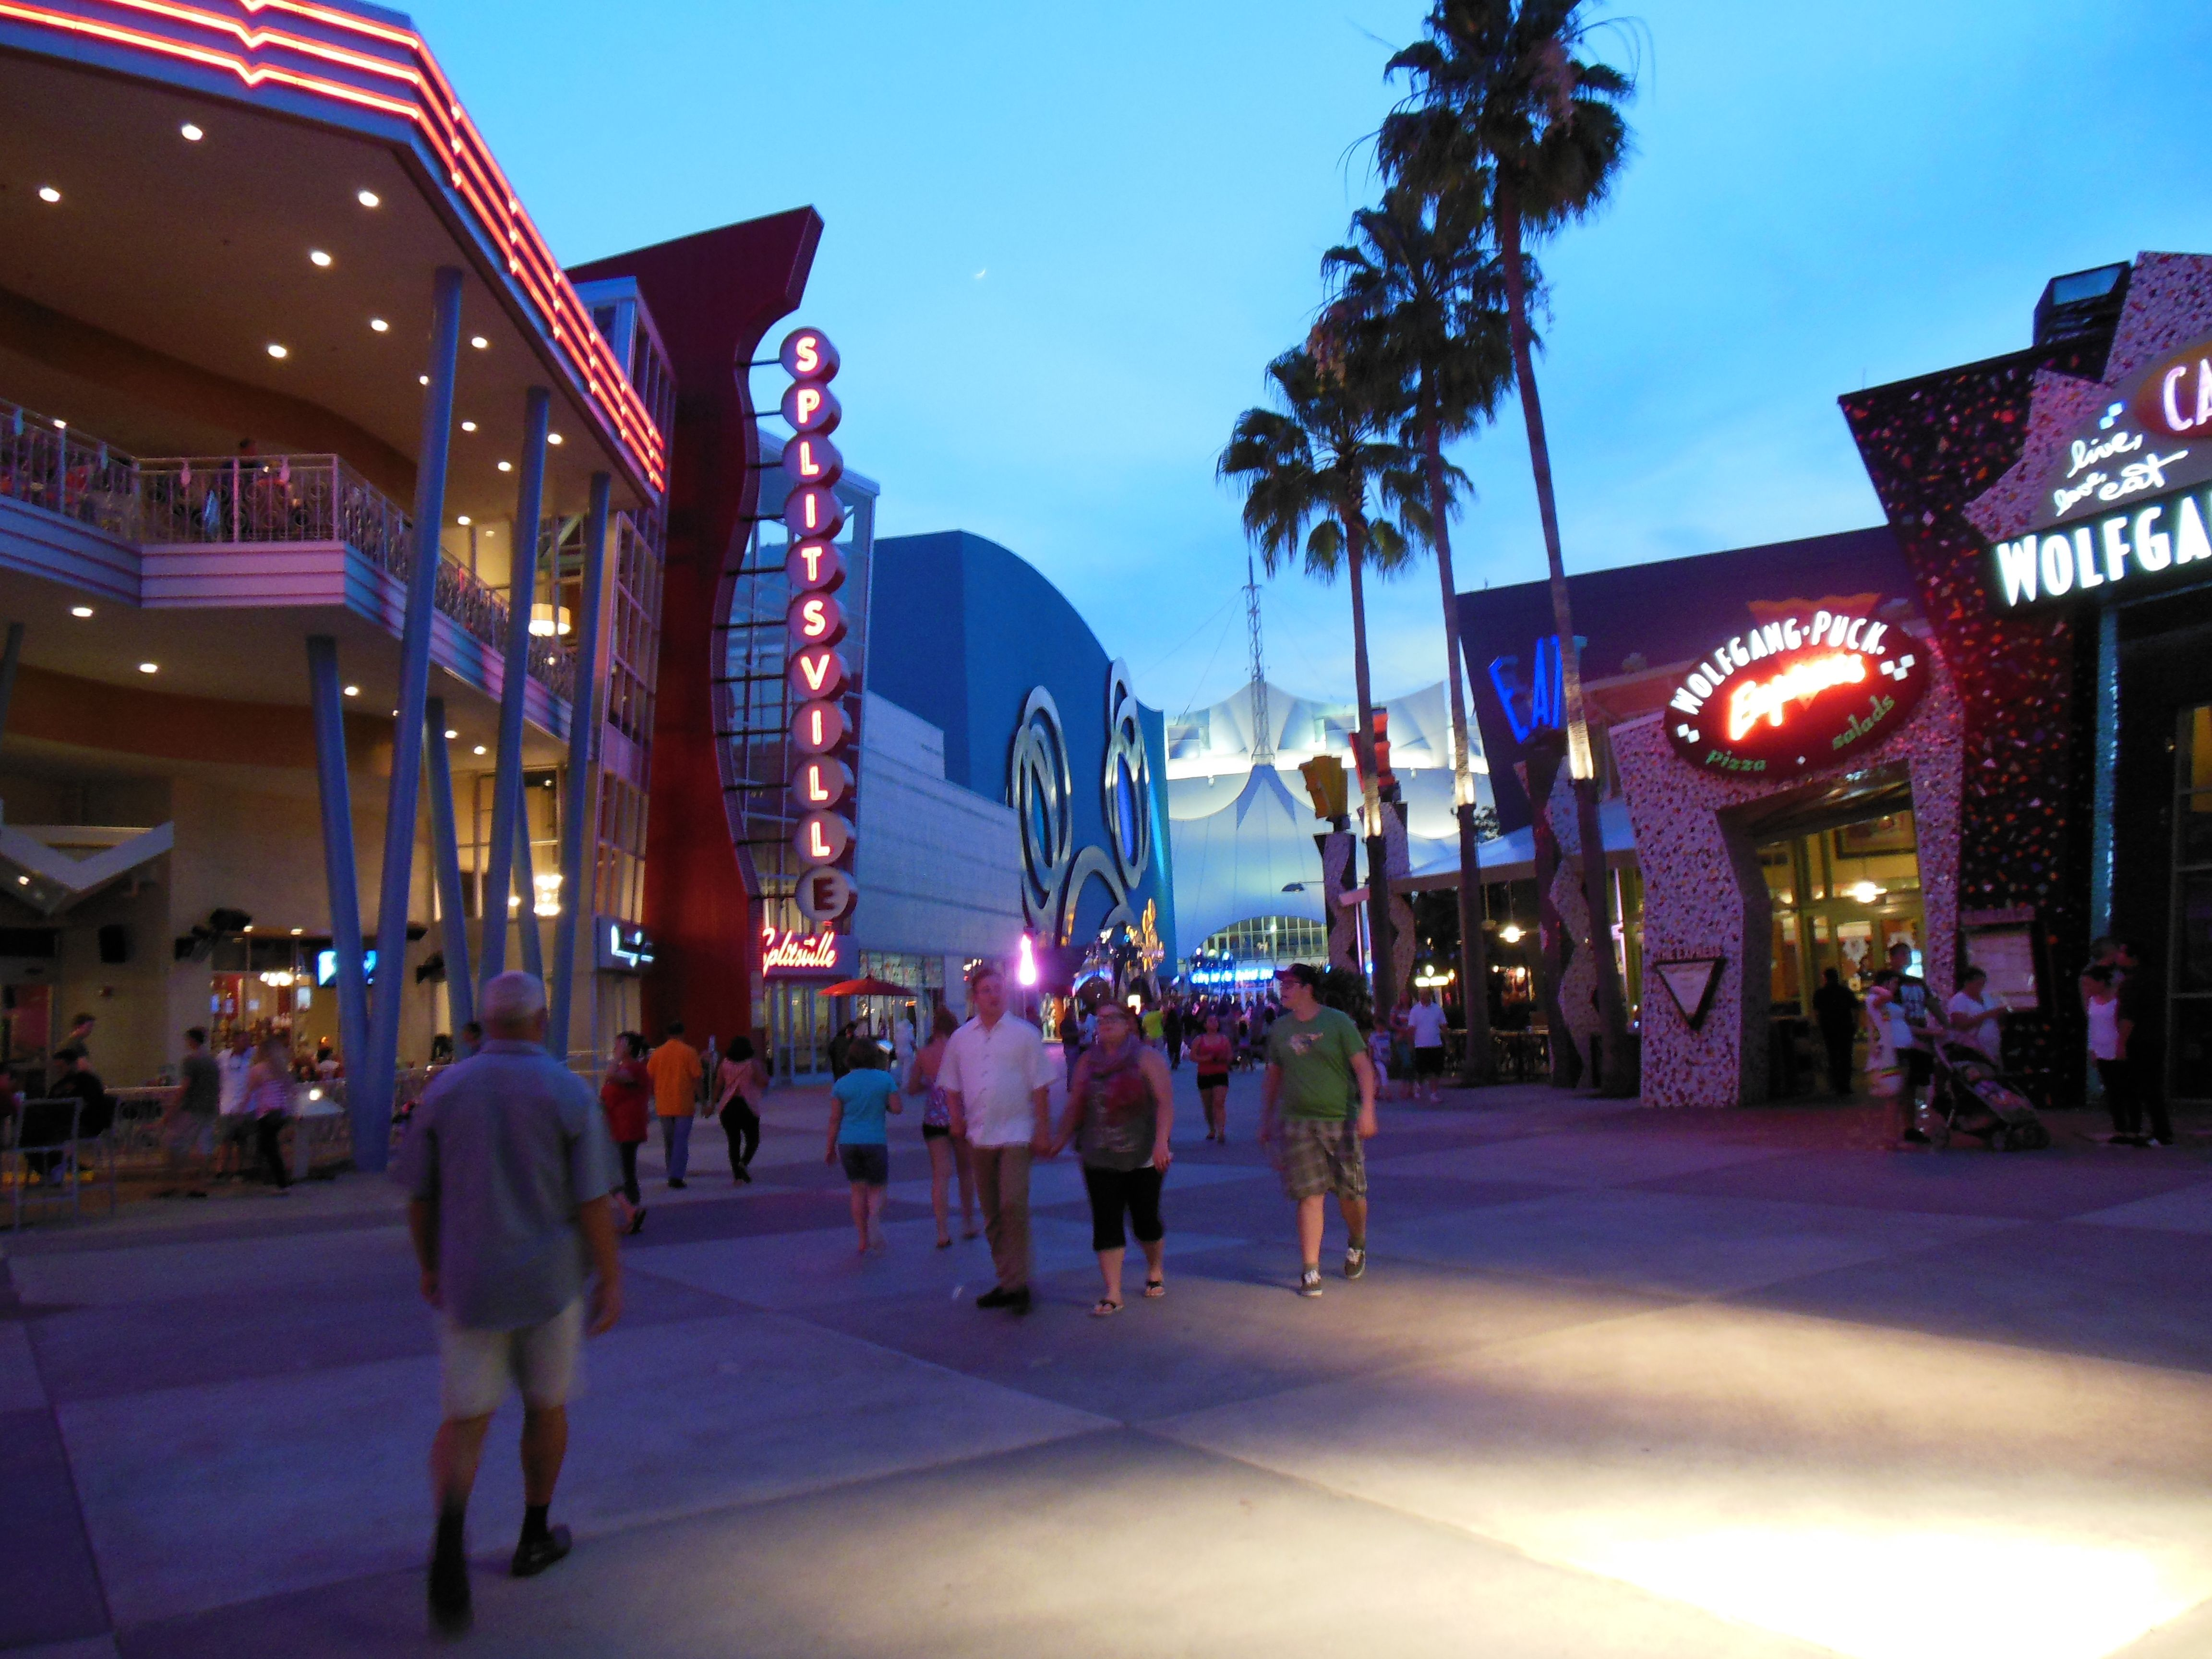 Downtown Disney Disney World Orlando Florida